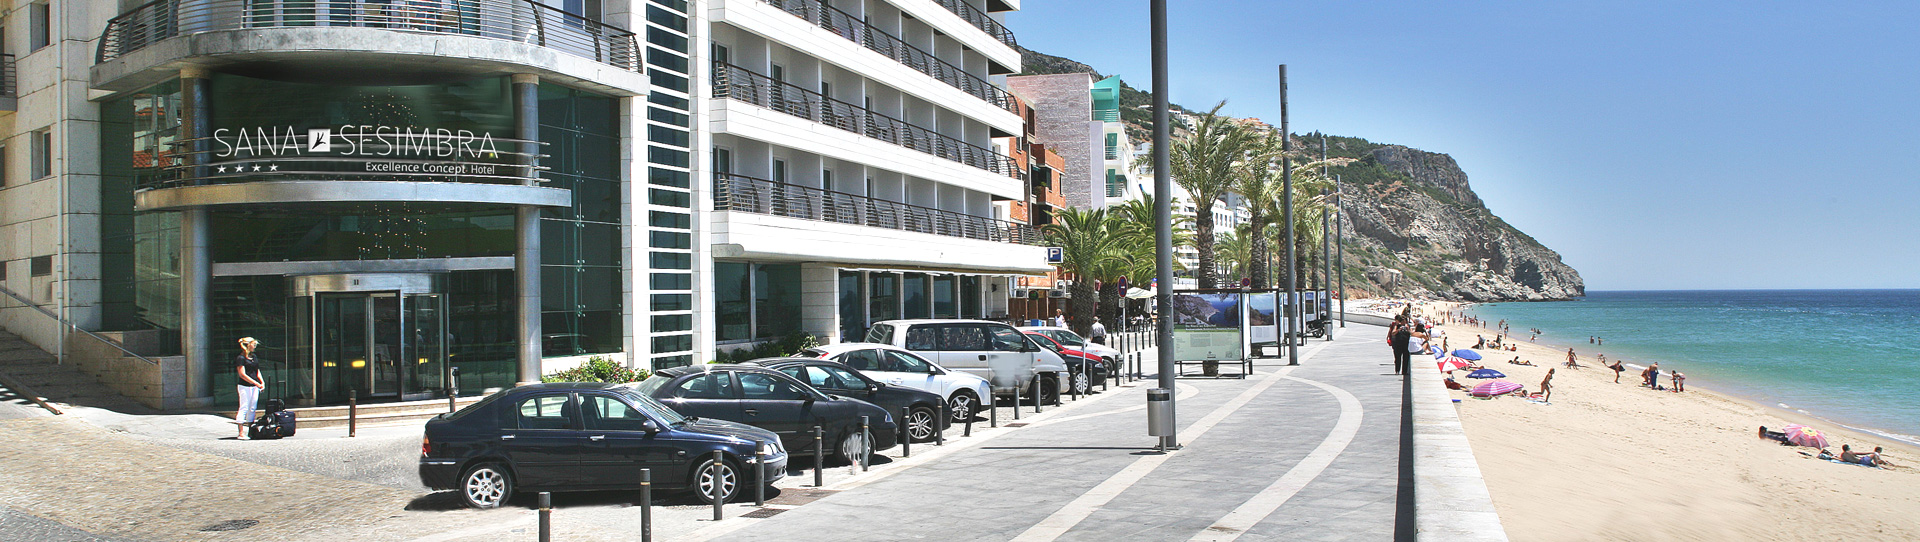 SANA Sesimbra Hotel - Photo 3